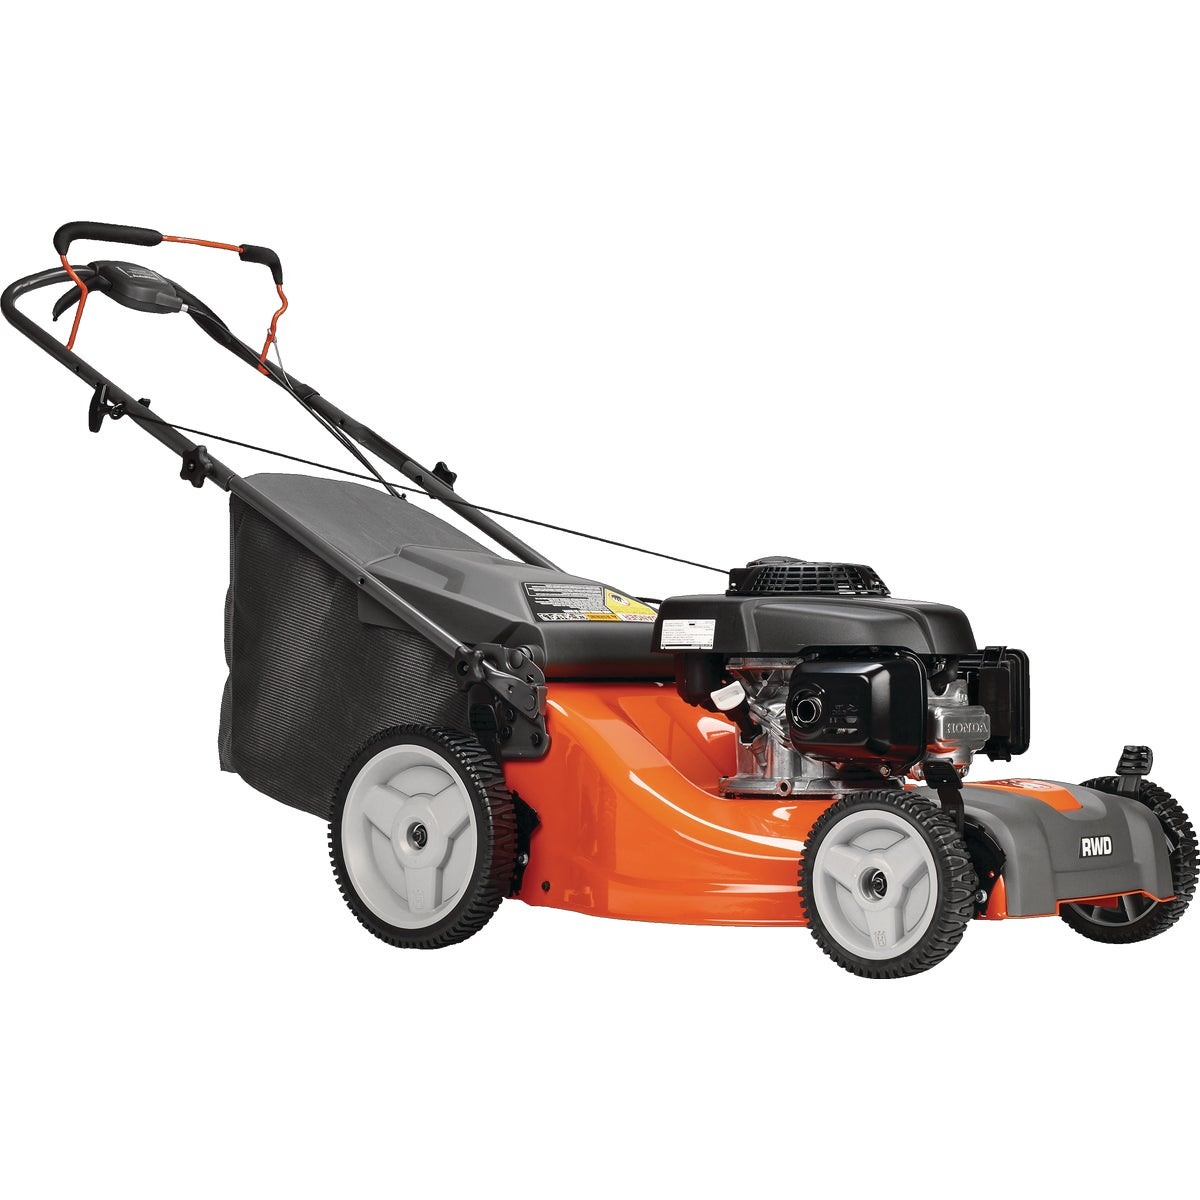 "22"" VARI-SPEED MOWER - 961430097 by Husqvarna Outdoor"